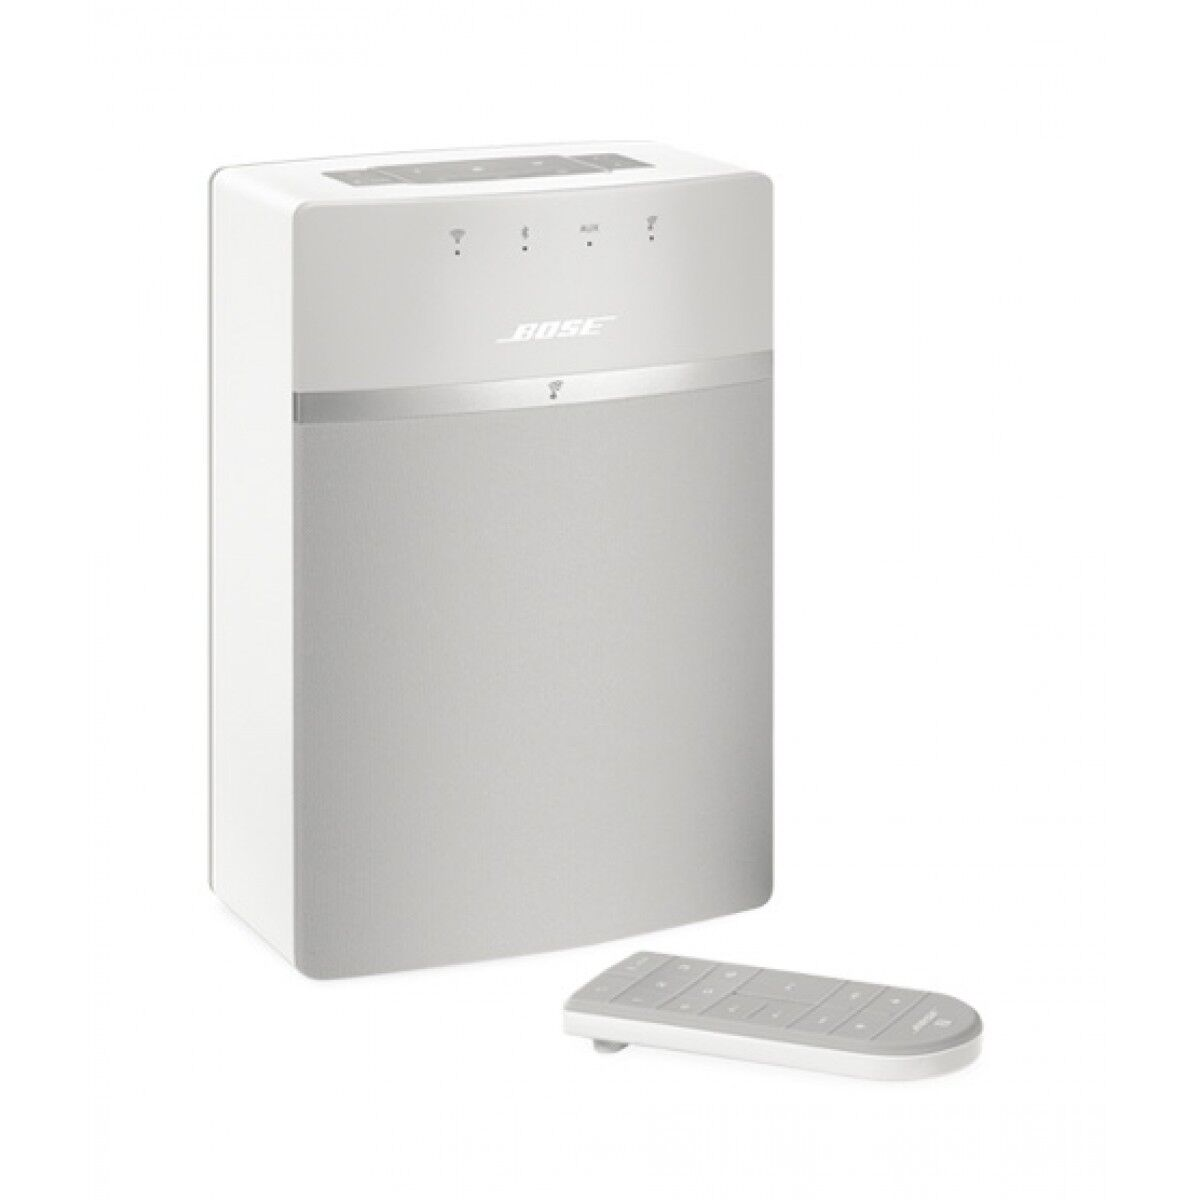 Bose SoundTouch 10 Wireless Music System White